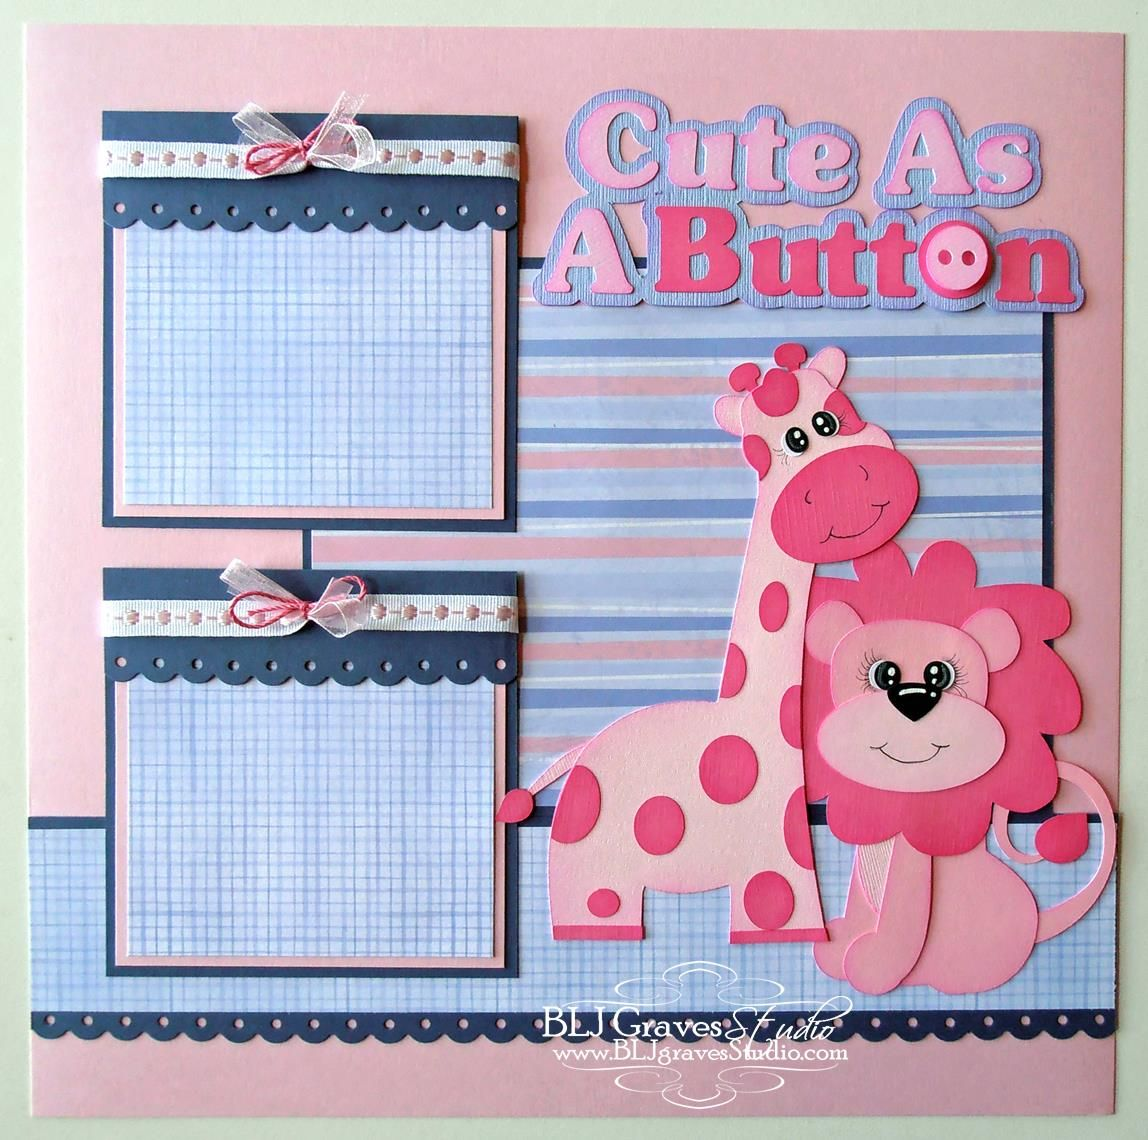 Blj graves studio cute as a button baby girl scrapbook page baby pinterest baby girl - Scrapbooking idees pages ...